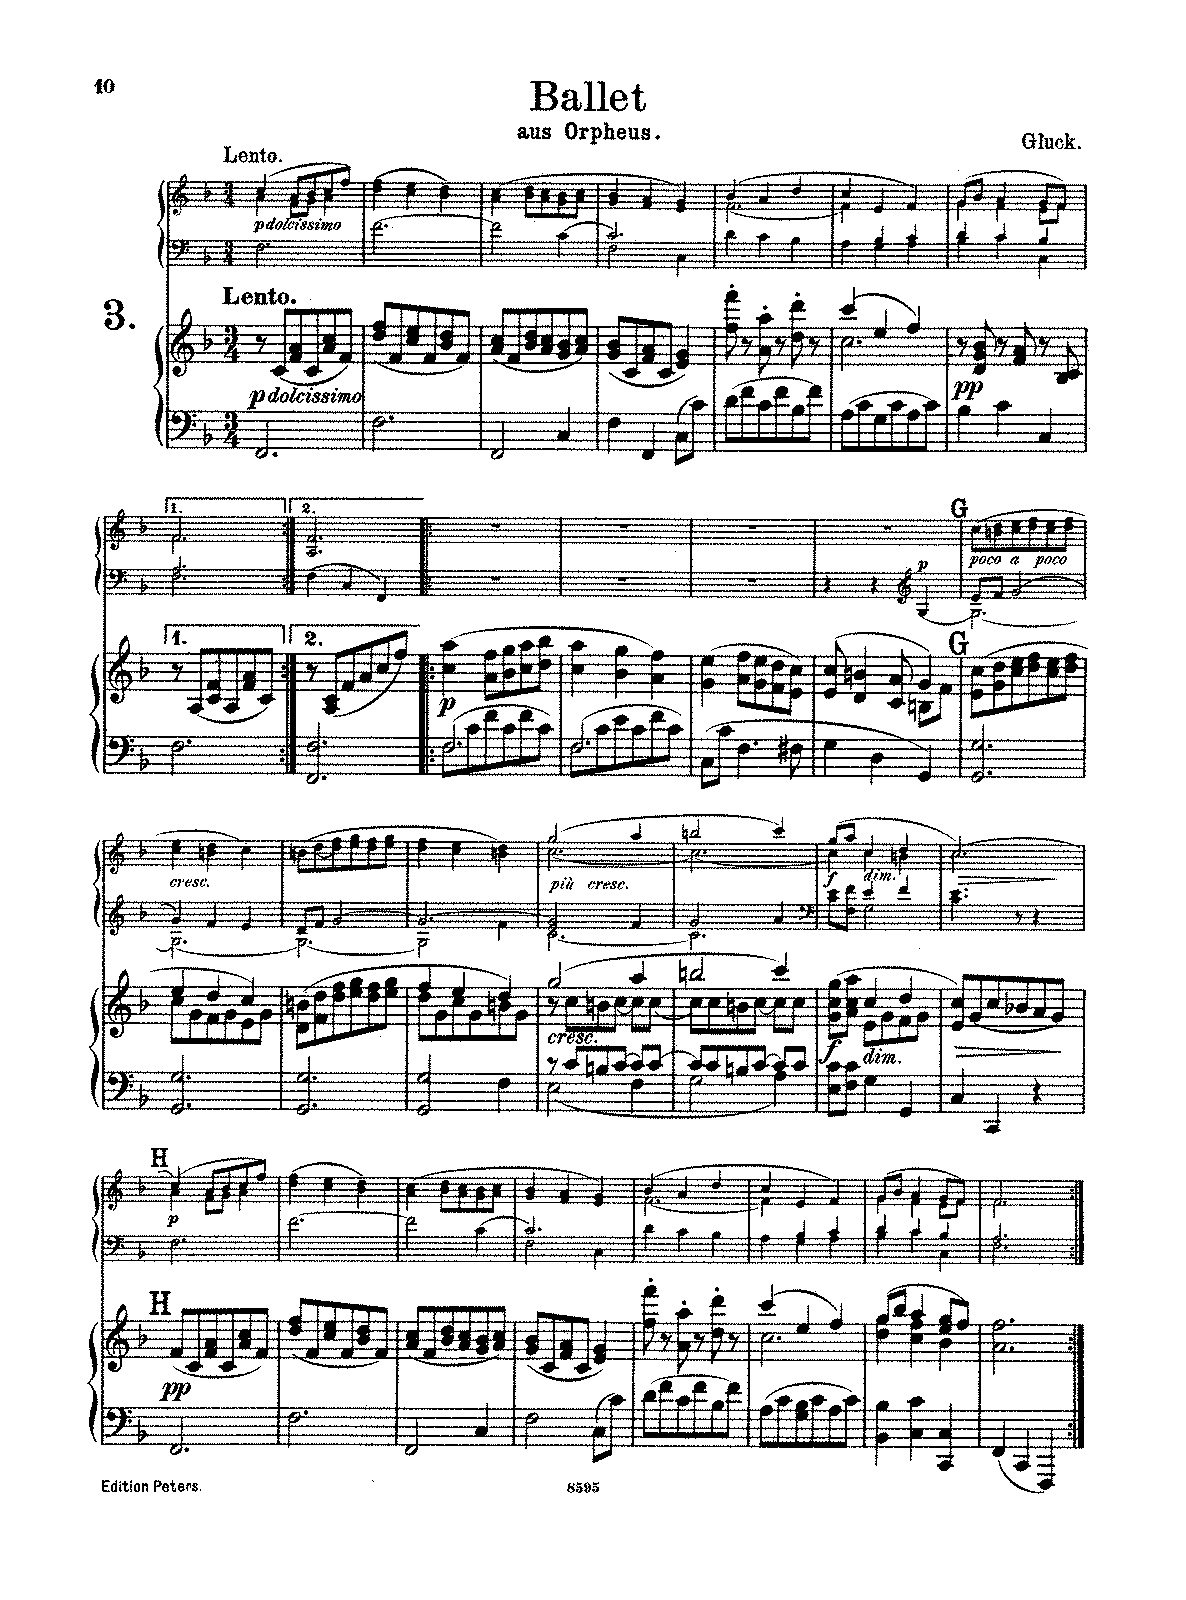 PMLP21377-Gluck Dance of the Blessed Spirits Arr.Reinhard HarmPno.pdf